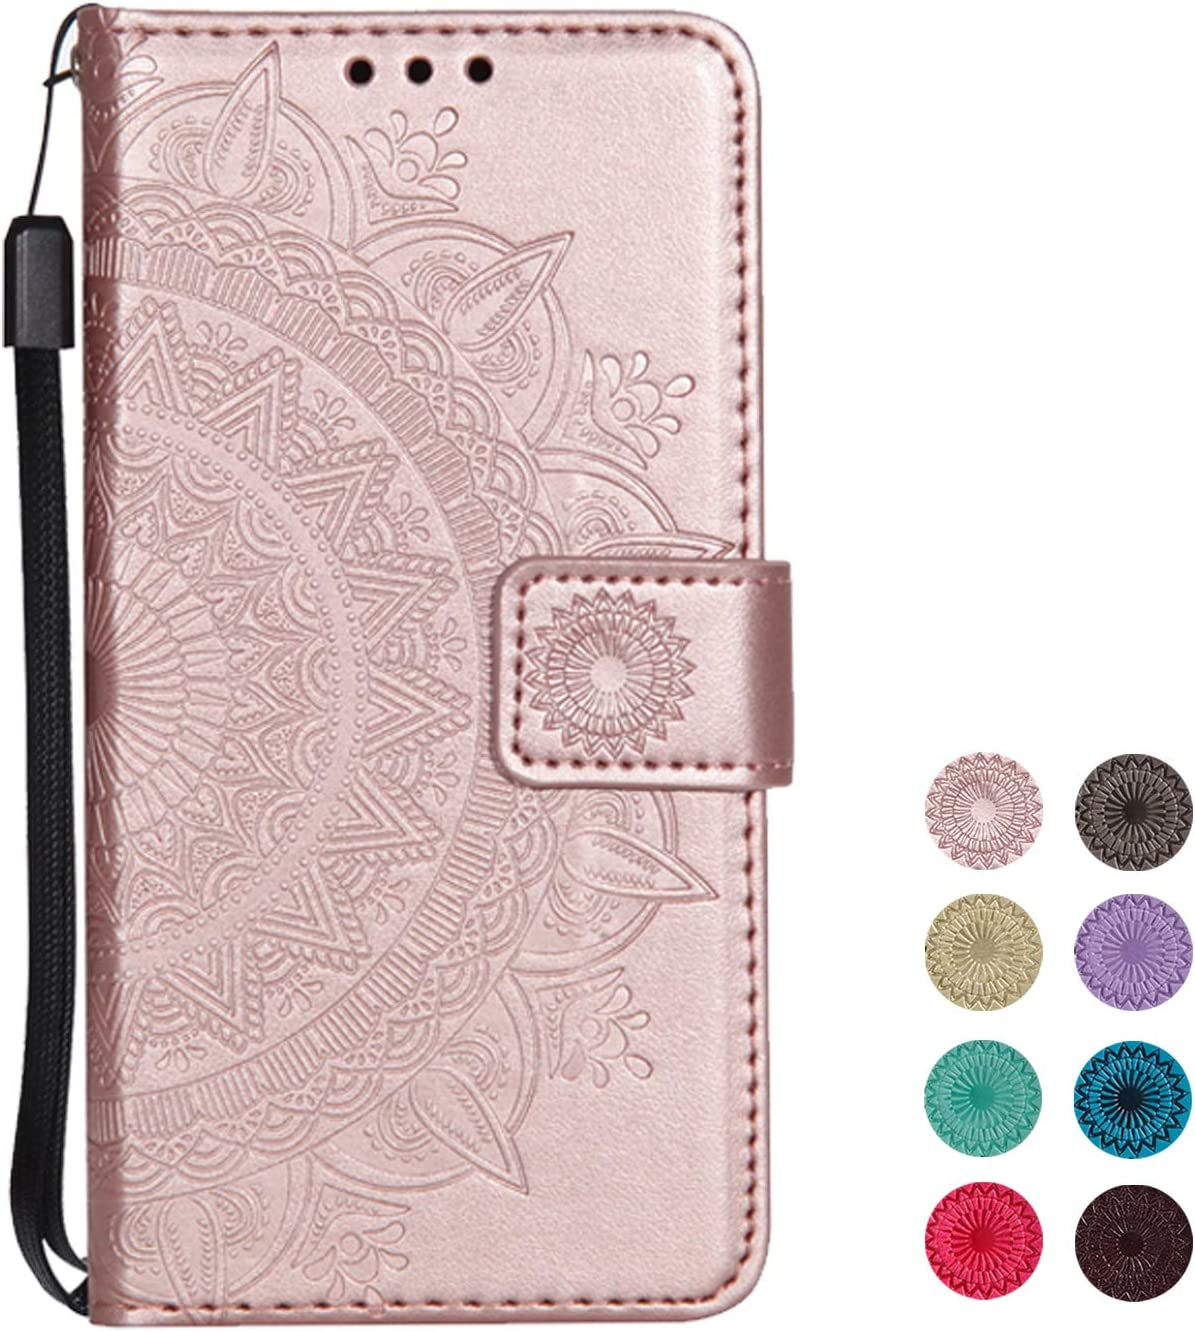 KuGi Huawei Honor 8X flip cover Flip cover Etui Housse Coque Portefeuille pour Huawei Honor 8X Rose Or